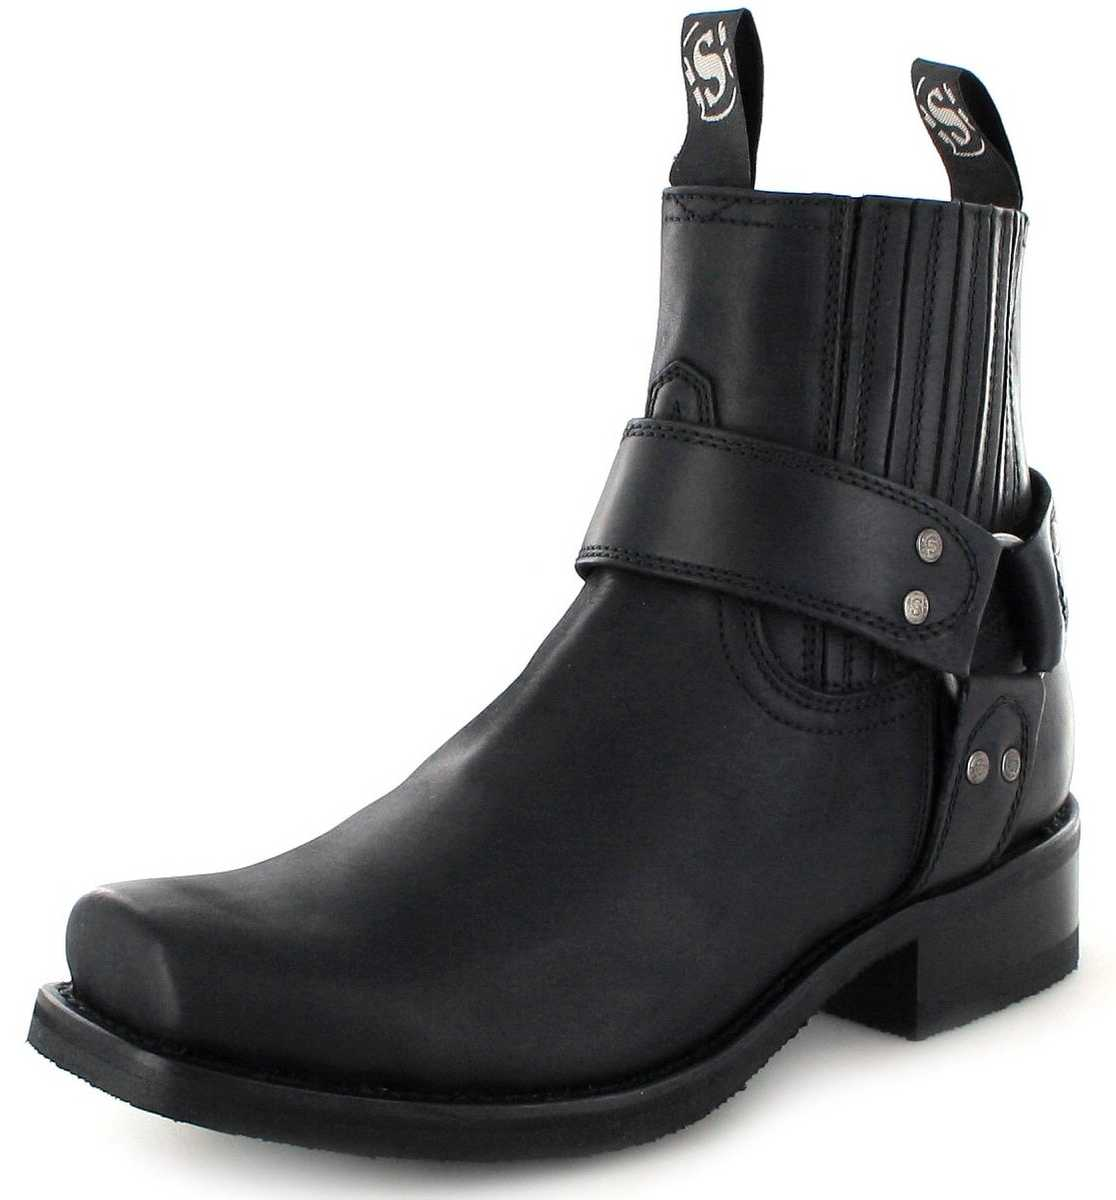 Sendra Boots 8286 Negro Biker Ankle Boot with rubber sole- Black